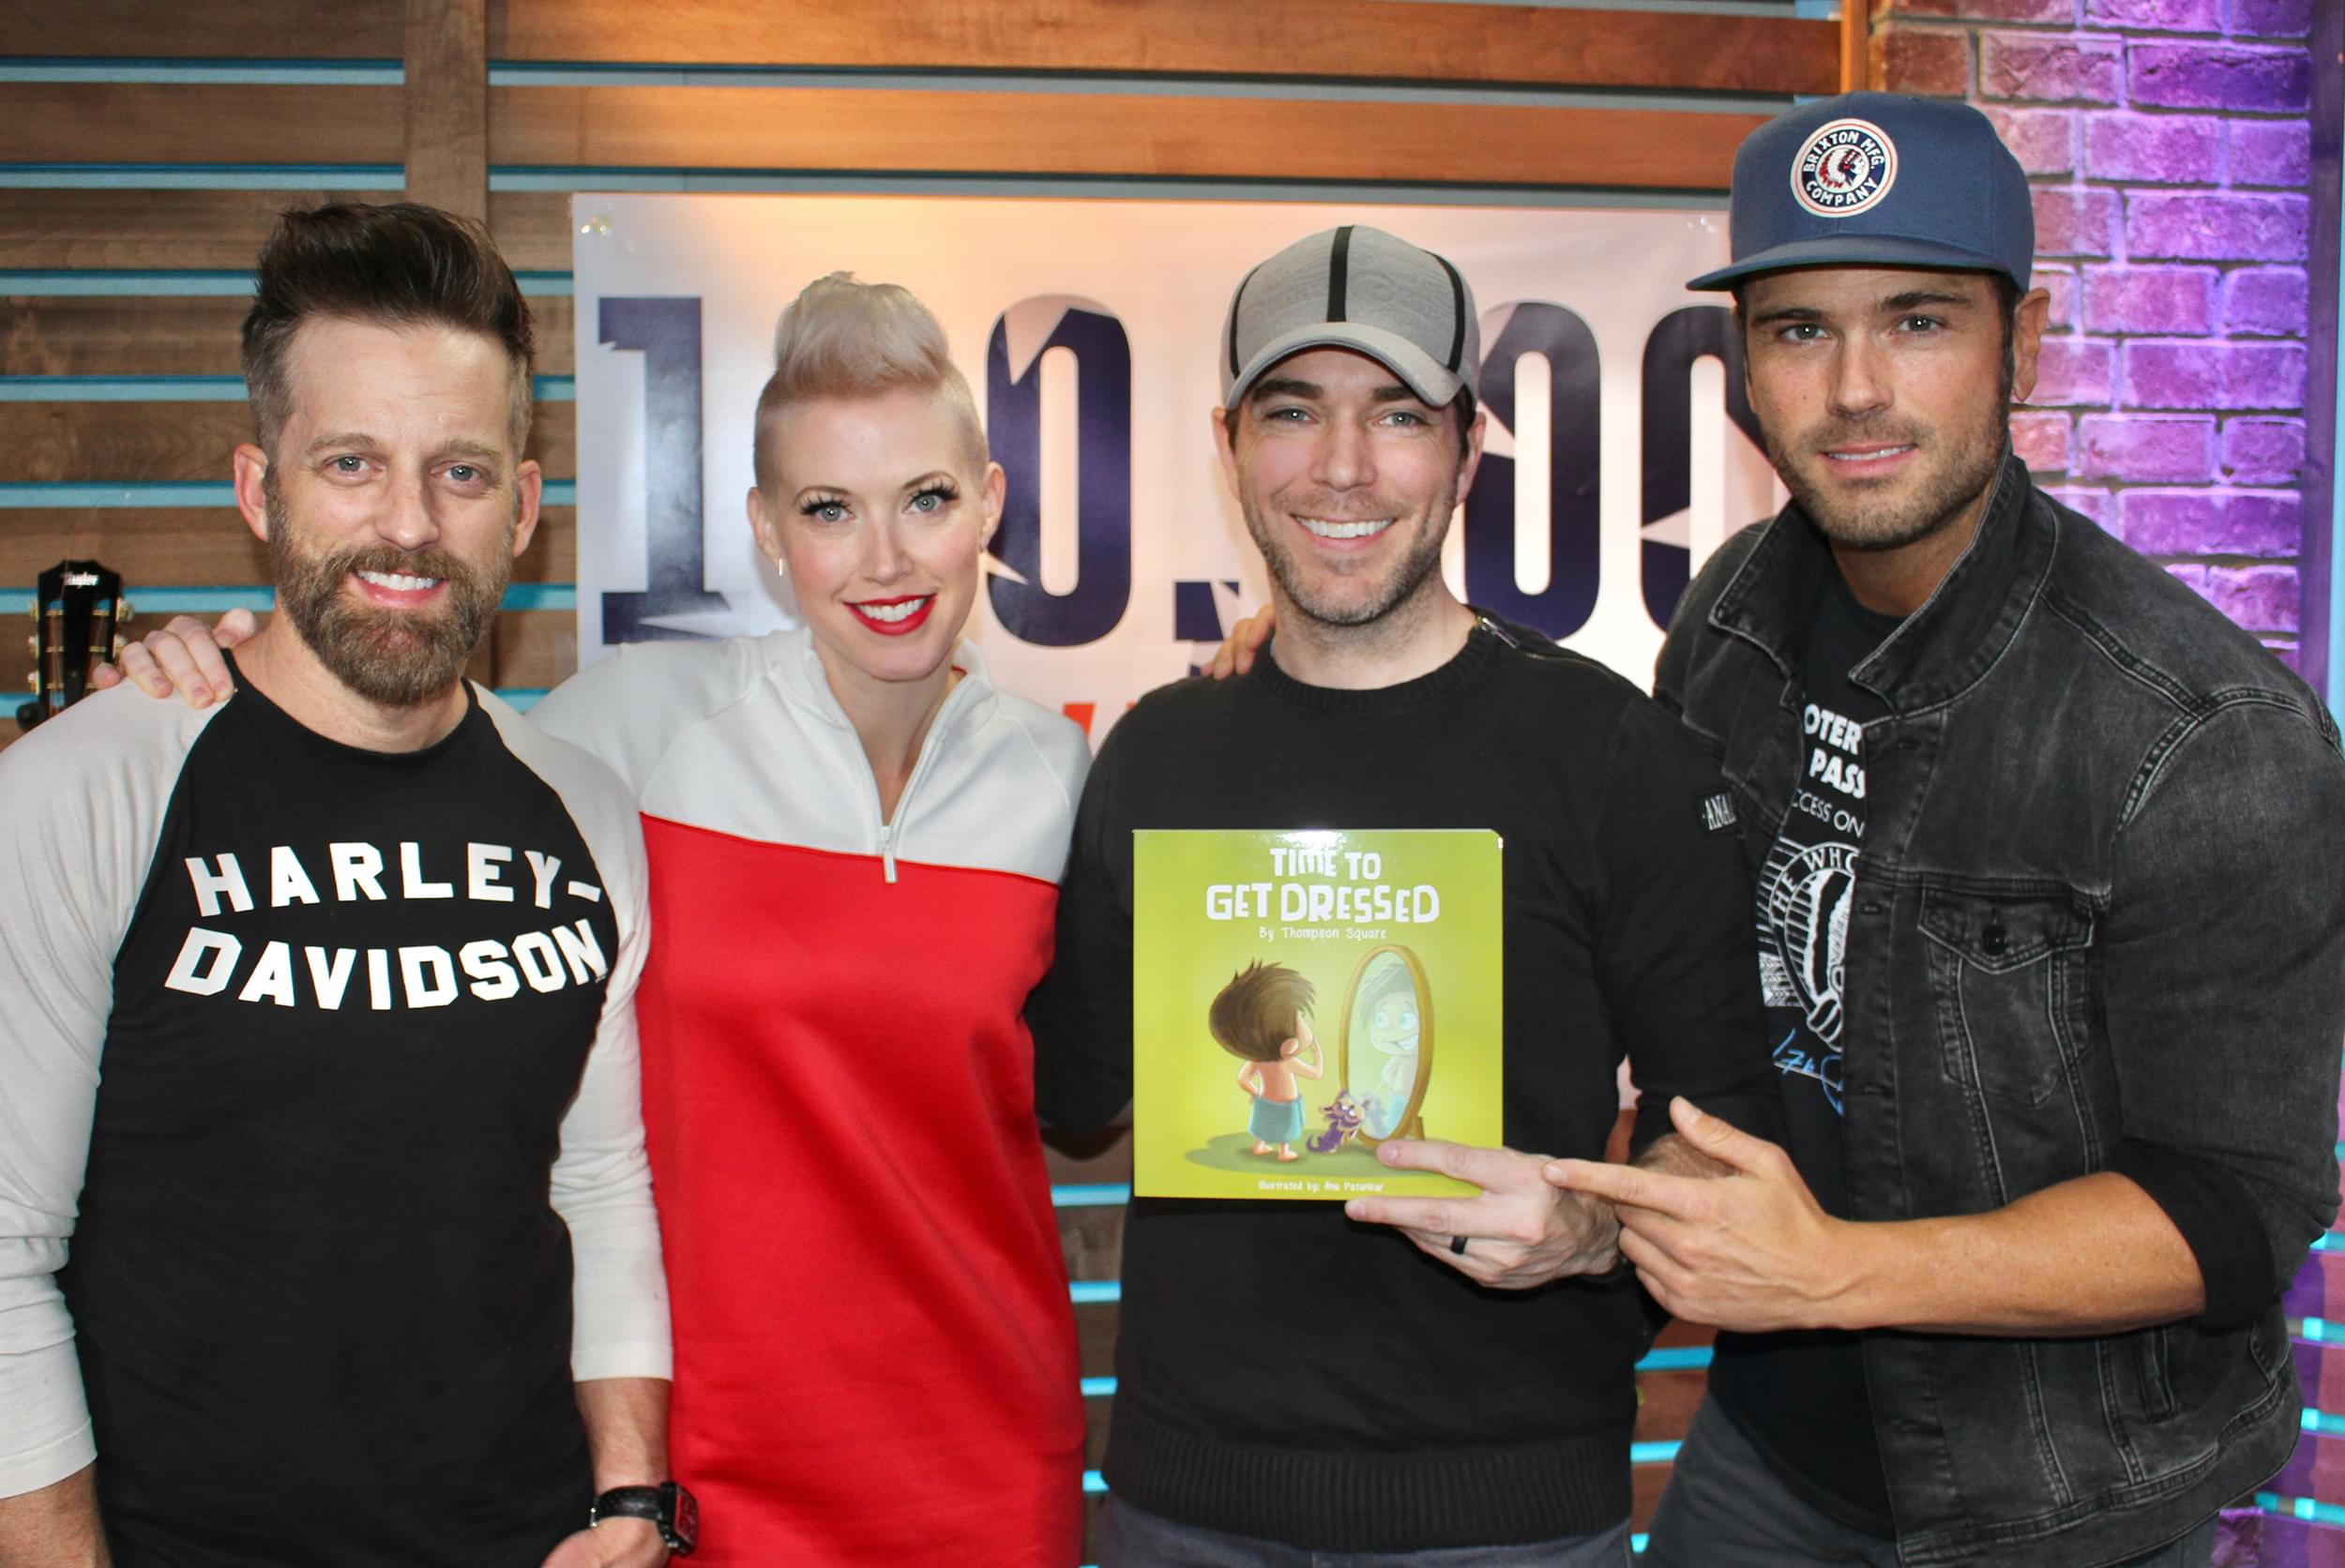 Thompson Square Shows Off Their New Children's Book, Talks Performing for Our Troops, 100,000 Thank Yous & MORE